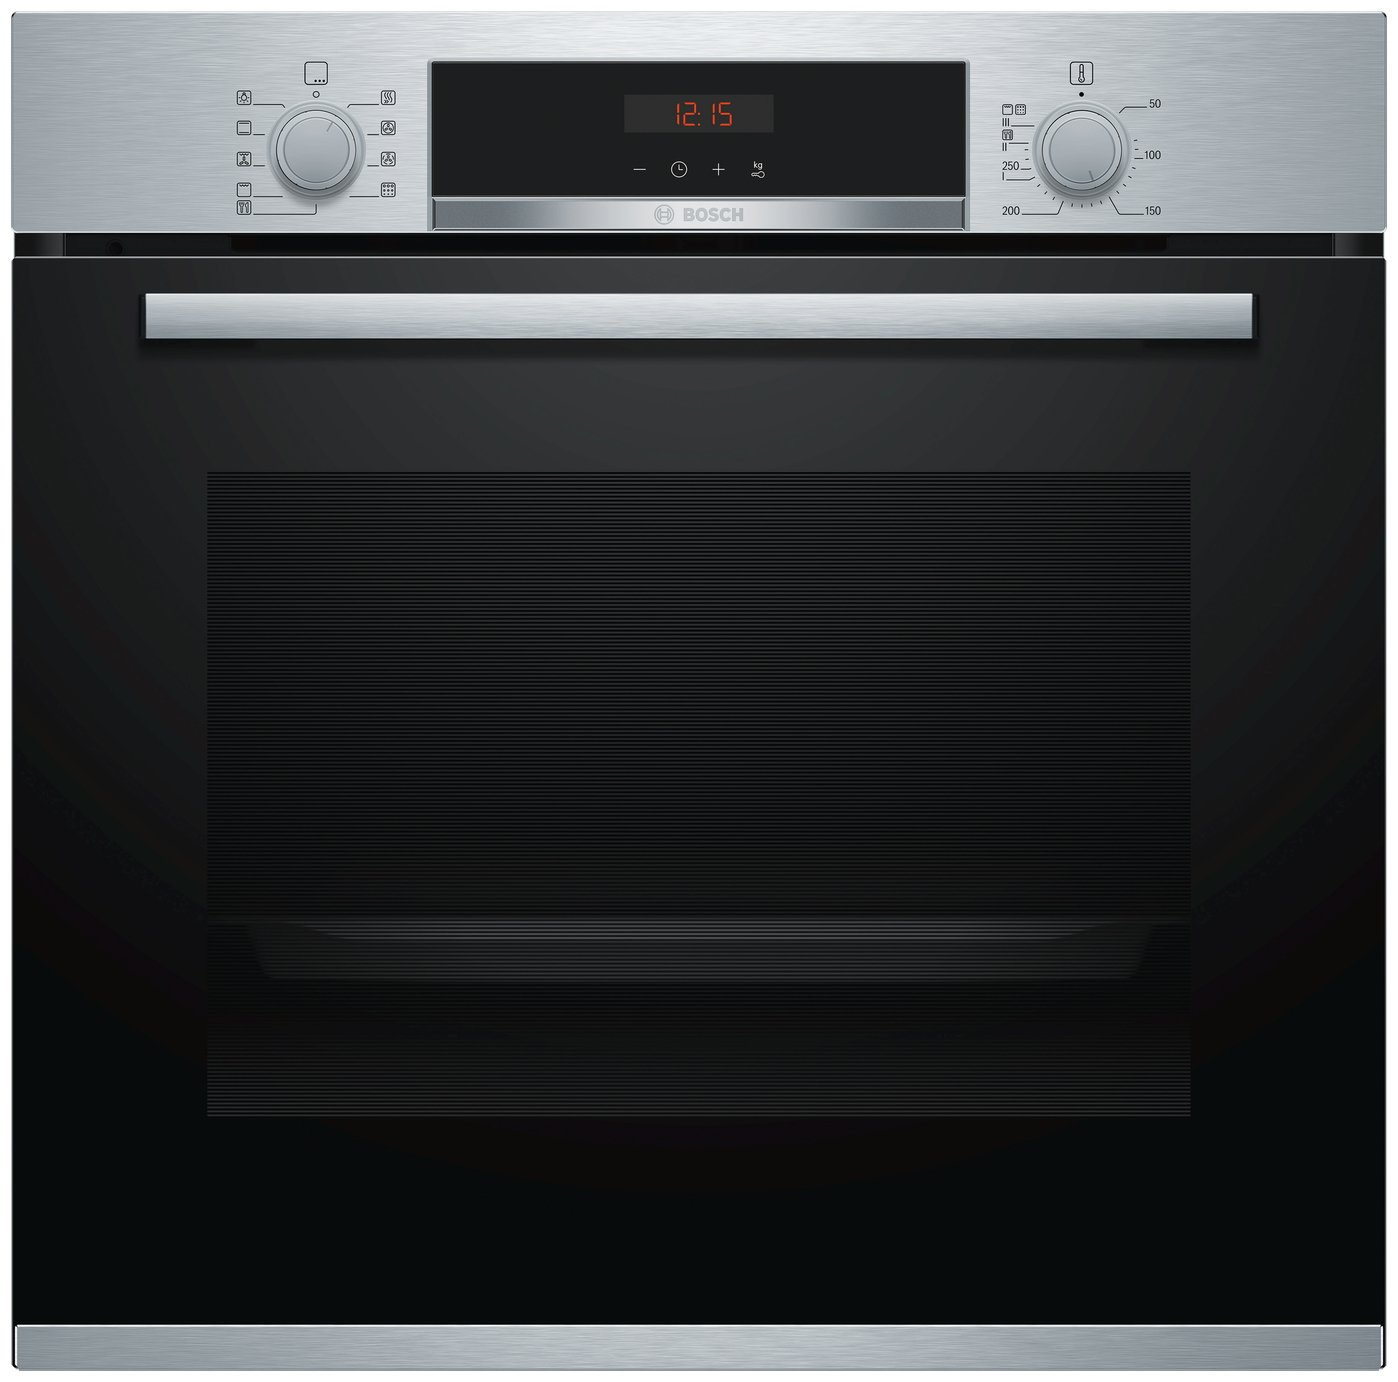 Bosch HBS573BS0B 59.4cm Single Electric Oven - S/ Steel